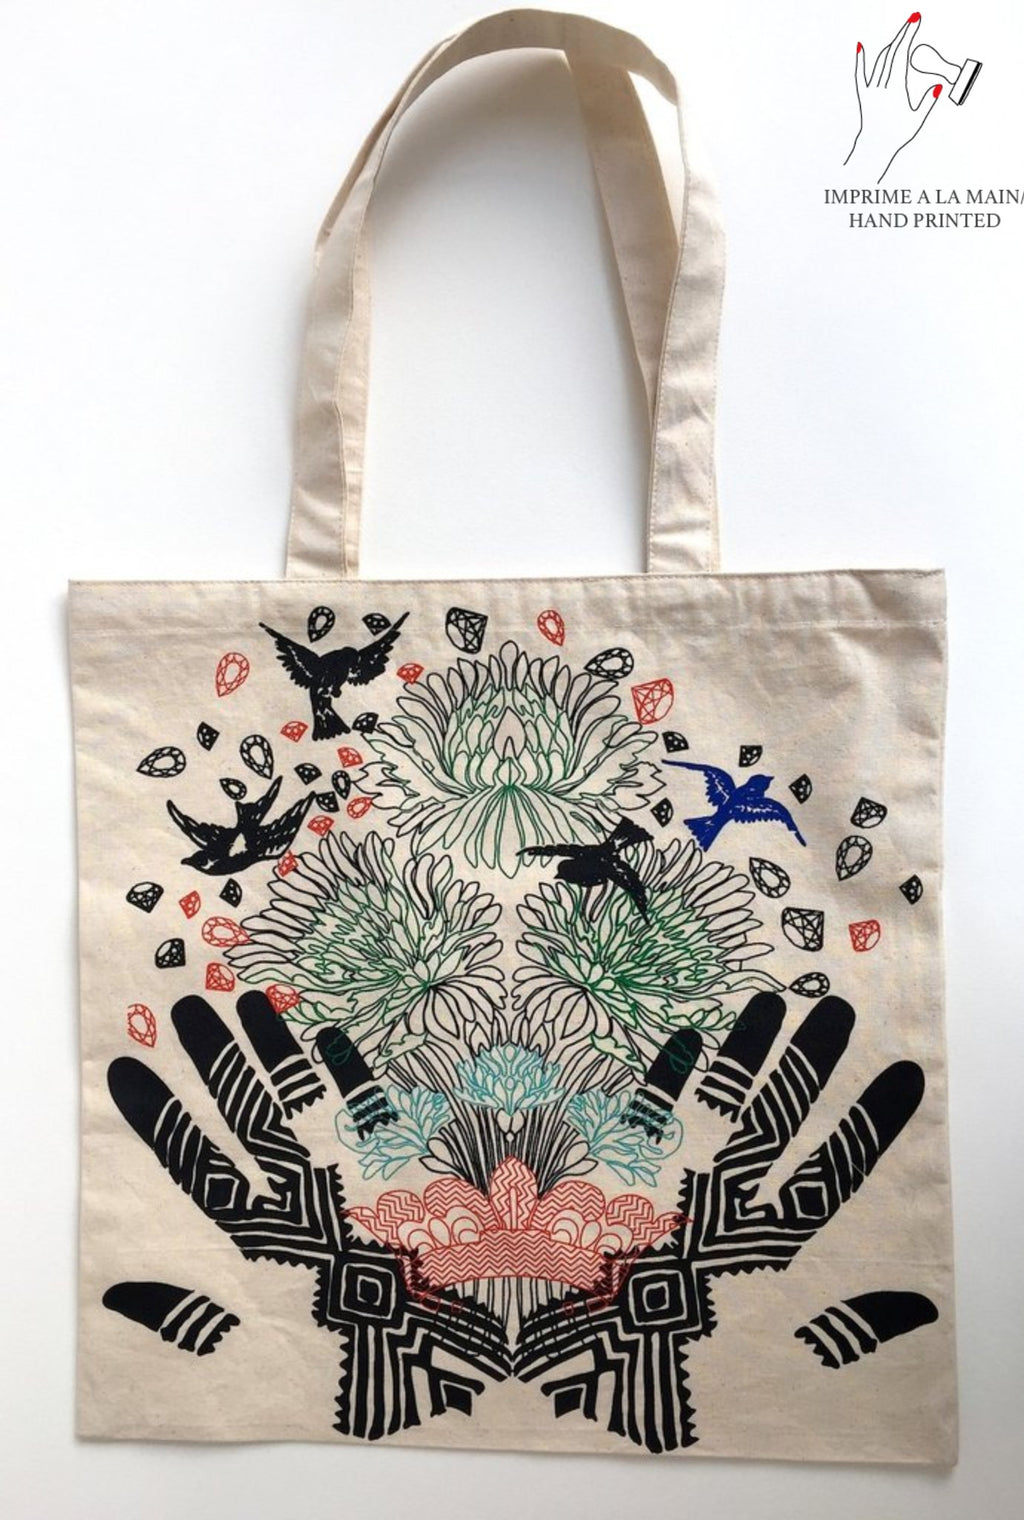 Tote Bag coton imprimé main 40x45cm « Flowered Henna Tattoo »